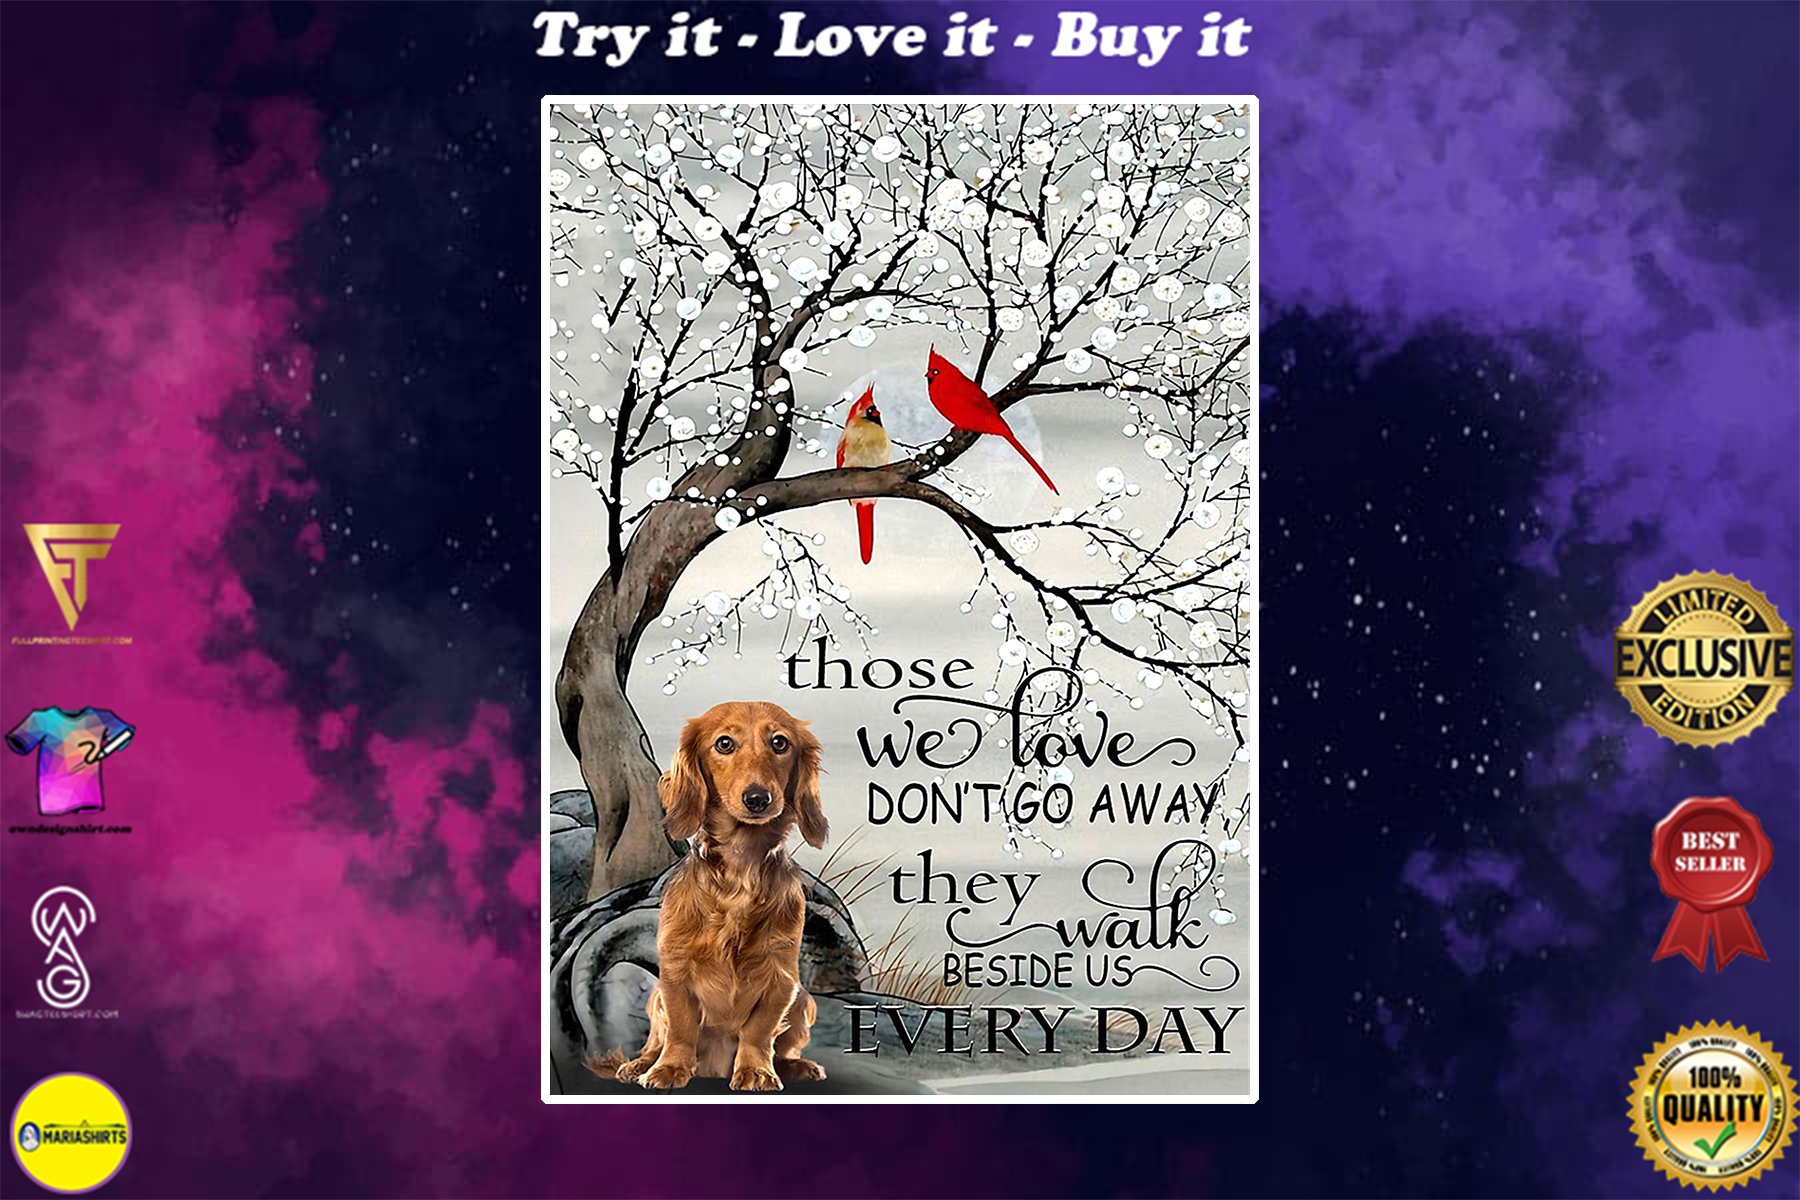 dachshund and cardinal they walk beside us every day poster